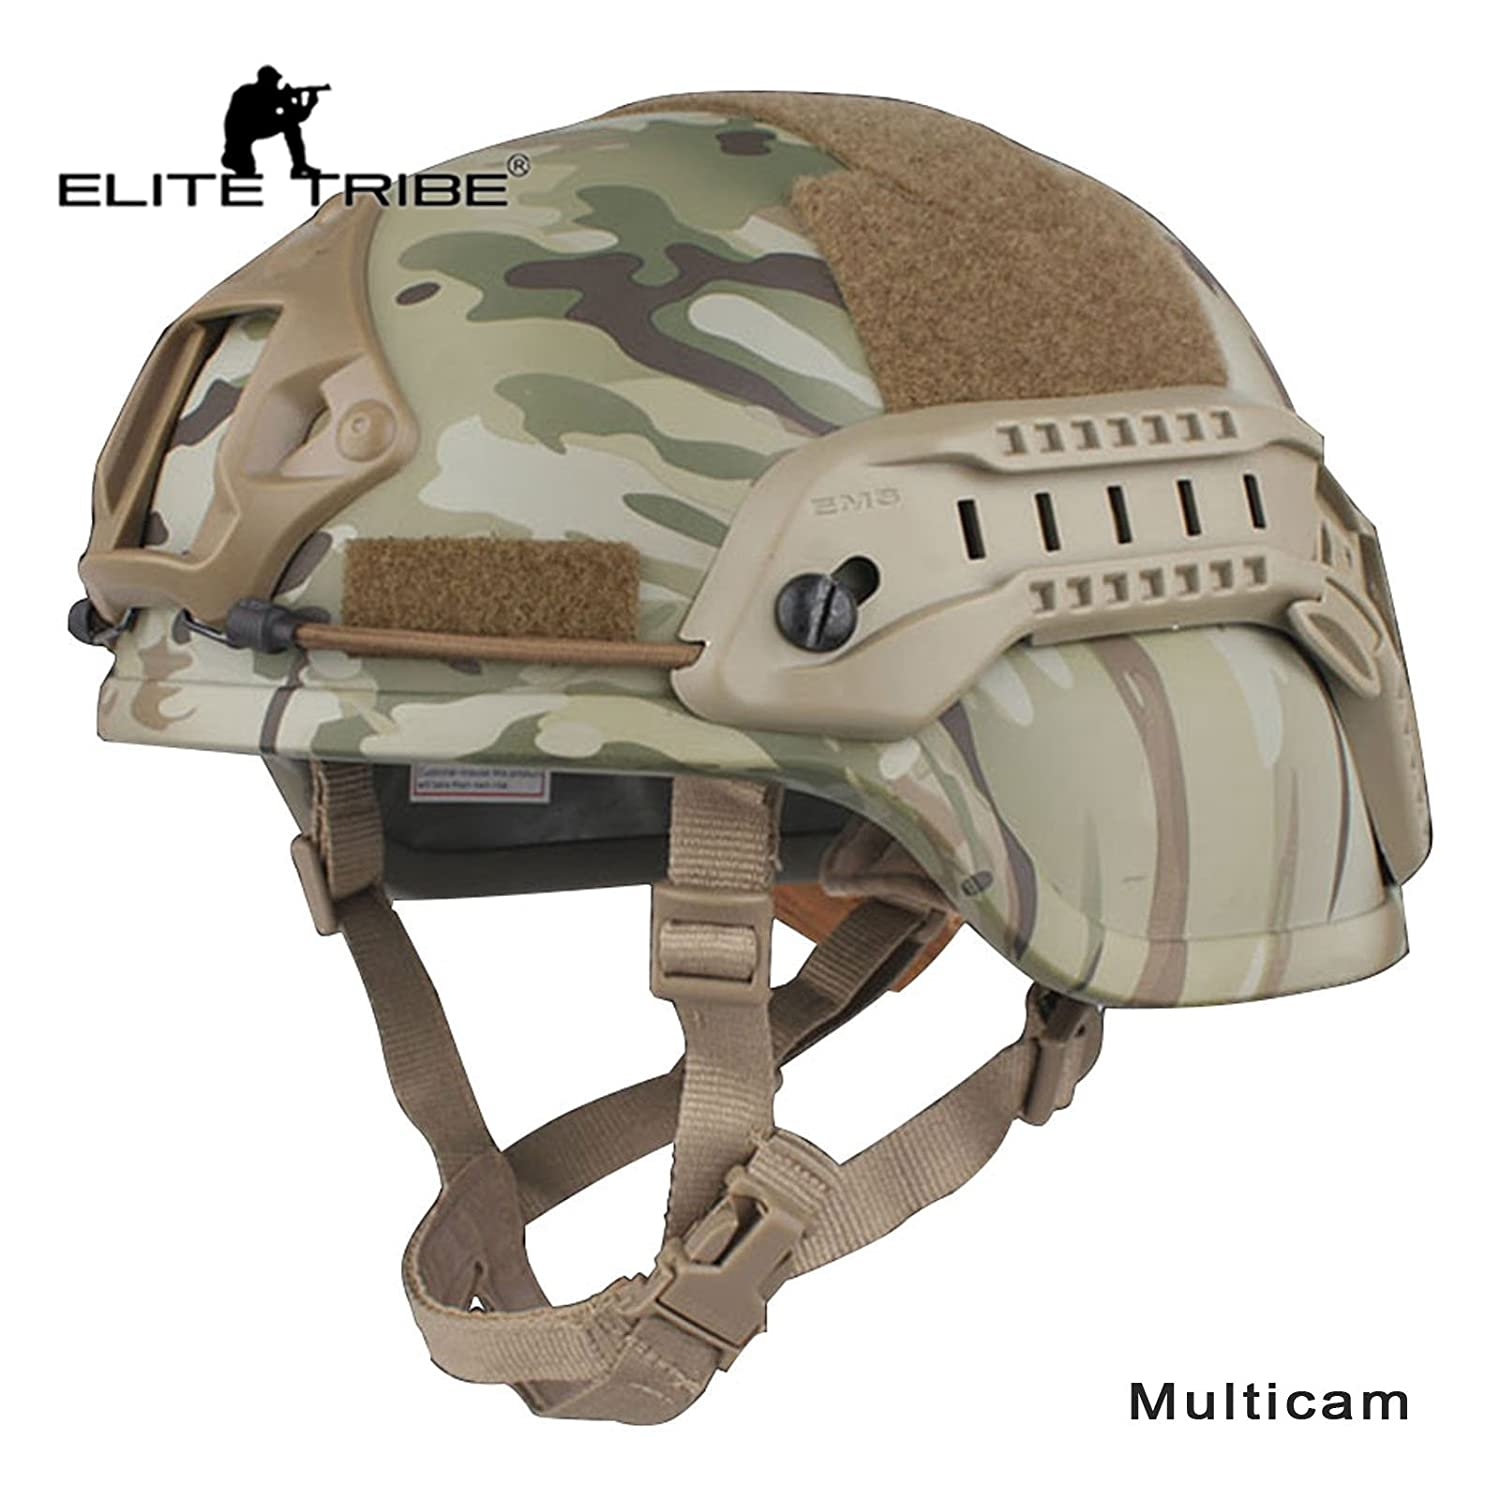 408bc865706 Amazon.com   Paintball Equipment ACH MICH 2000 Helmet Special Action  Version Tactical Military Airsoft Helmet Protective Helmet (at)   Sports    Outdoors